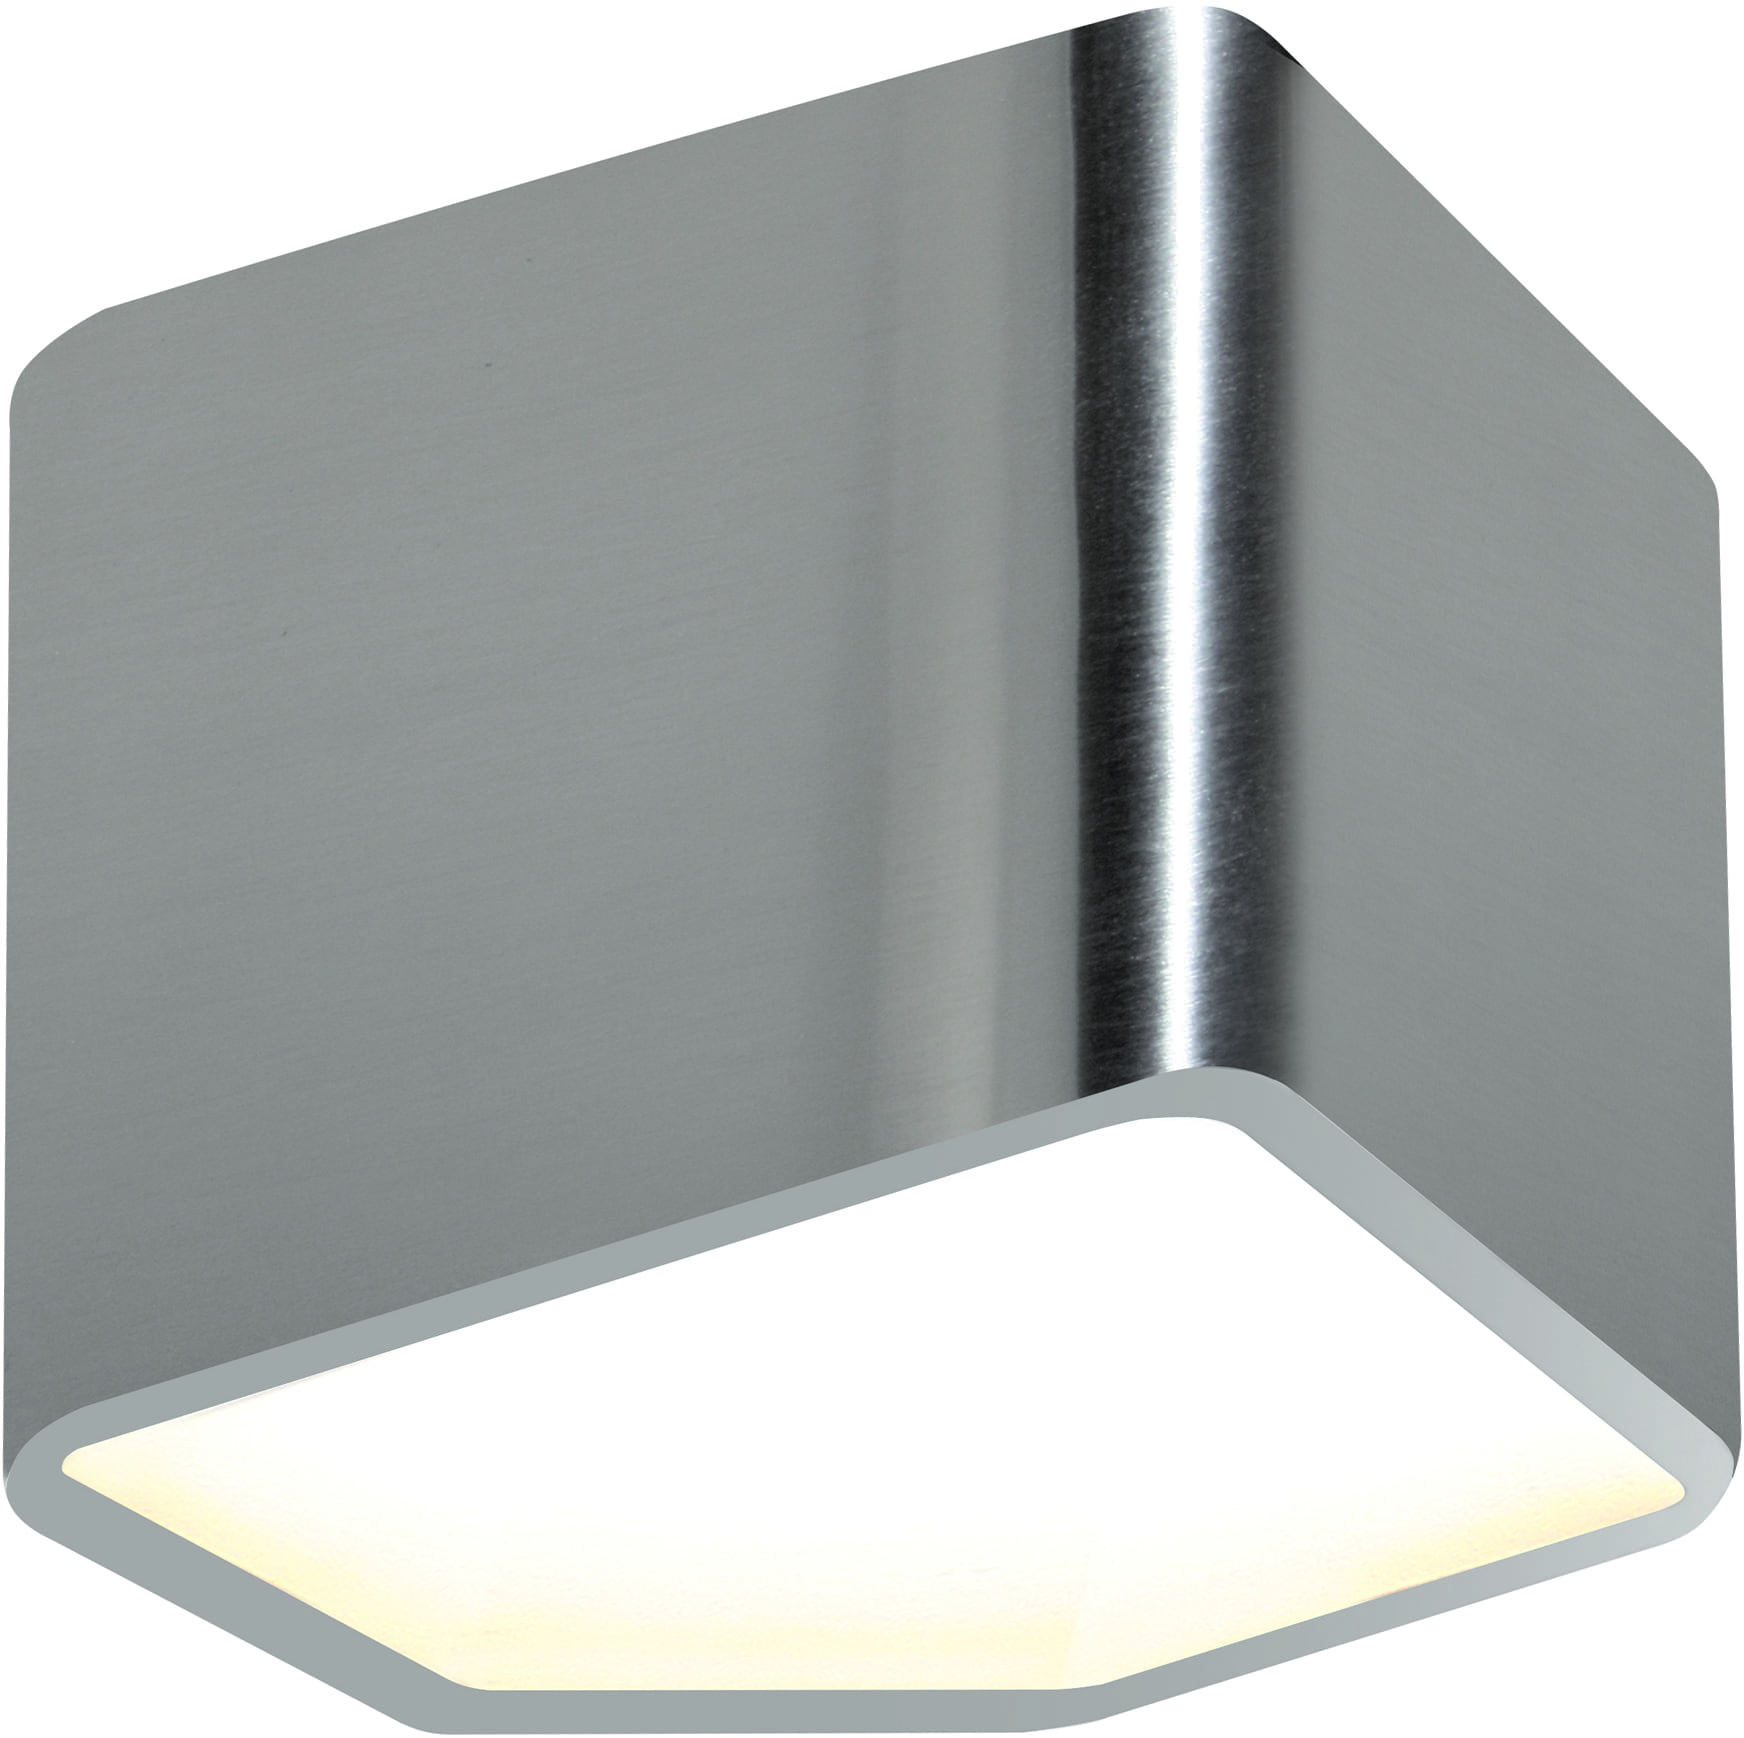 Chrome LED Wall Lamp with a warm light color